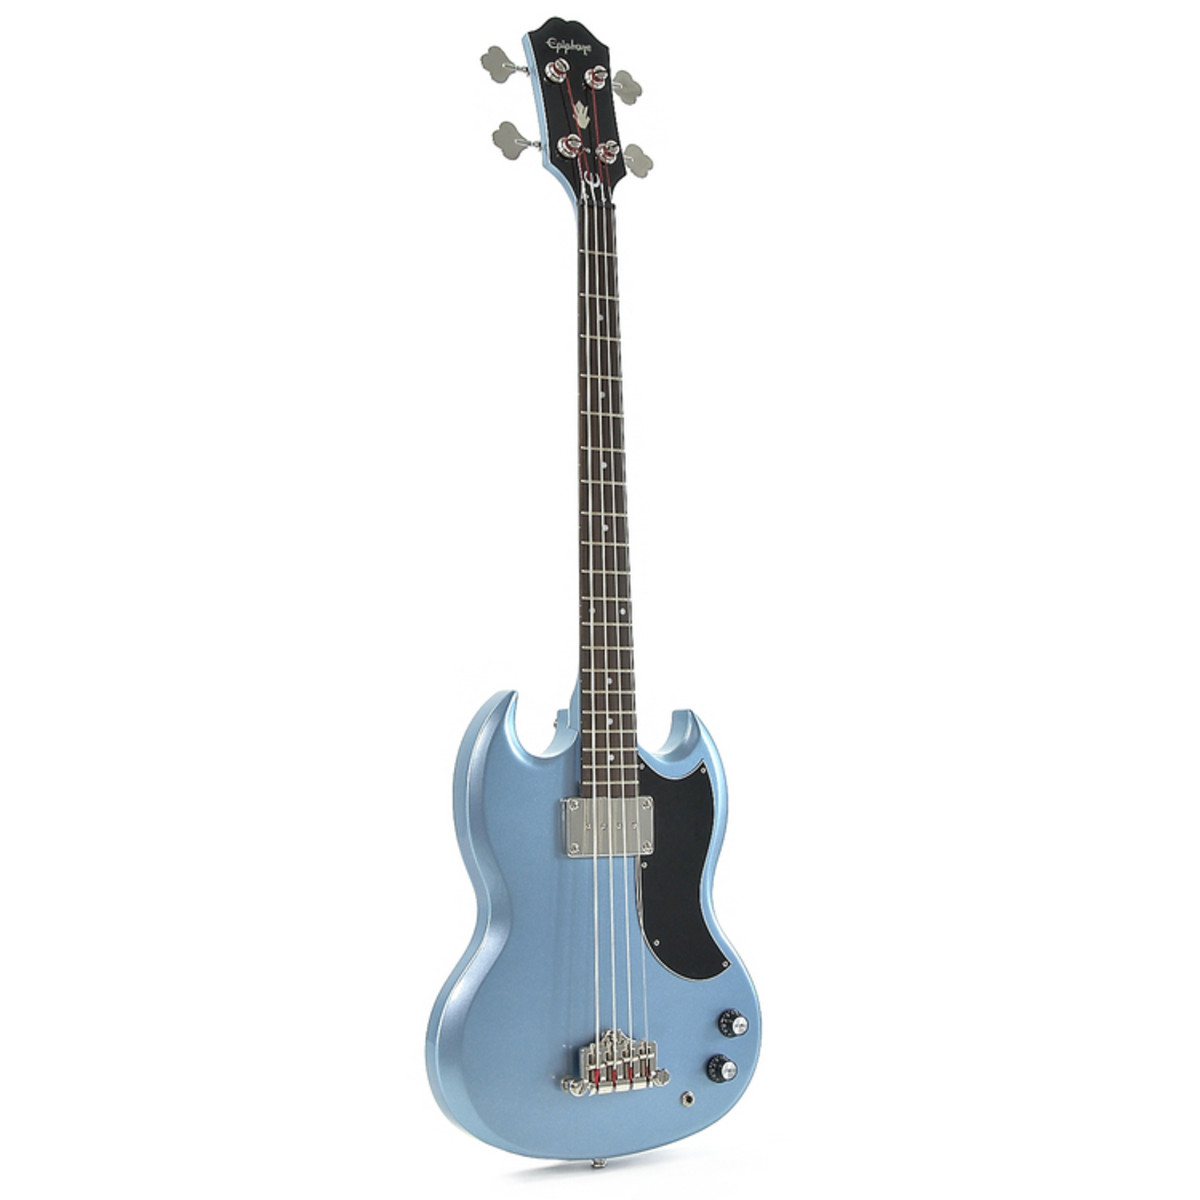 disc epiphone eb 0 bass special edition pelham blue at gear4music. Black Bedroom Furniture Sets. Home Design Ideas